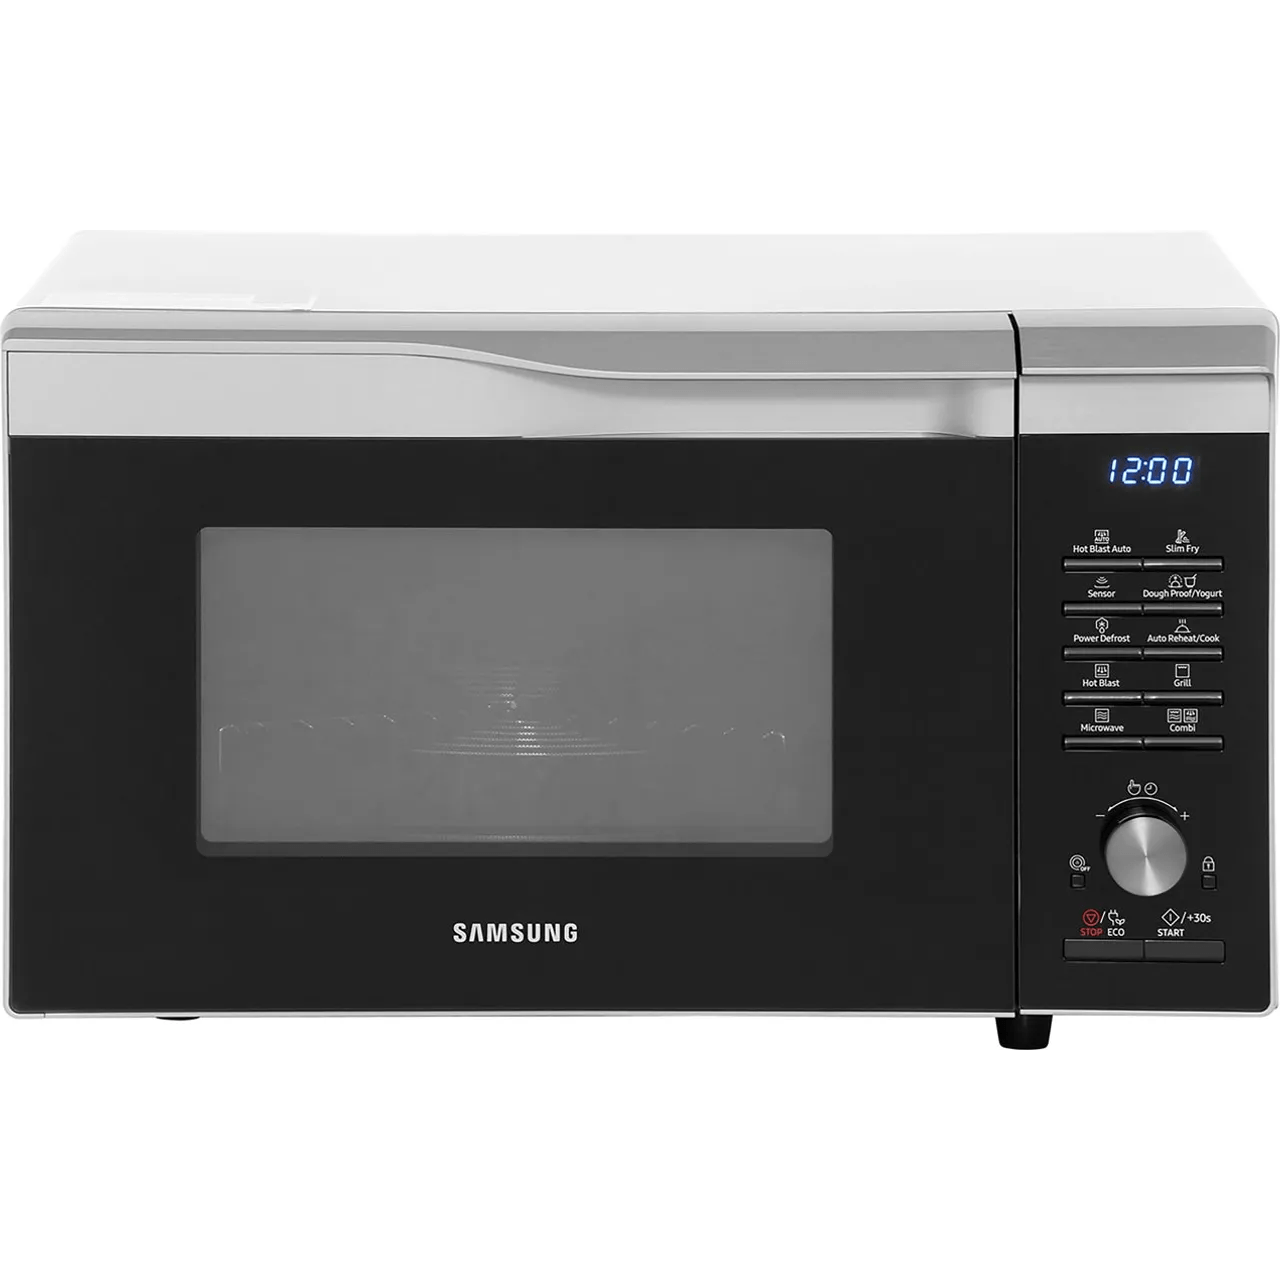 samsung easy view mc28m6075cs 28 litre combination microwave oven silver